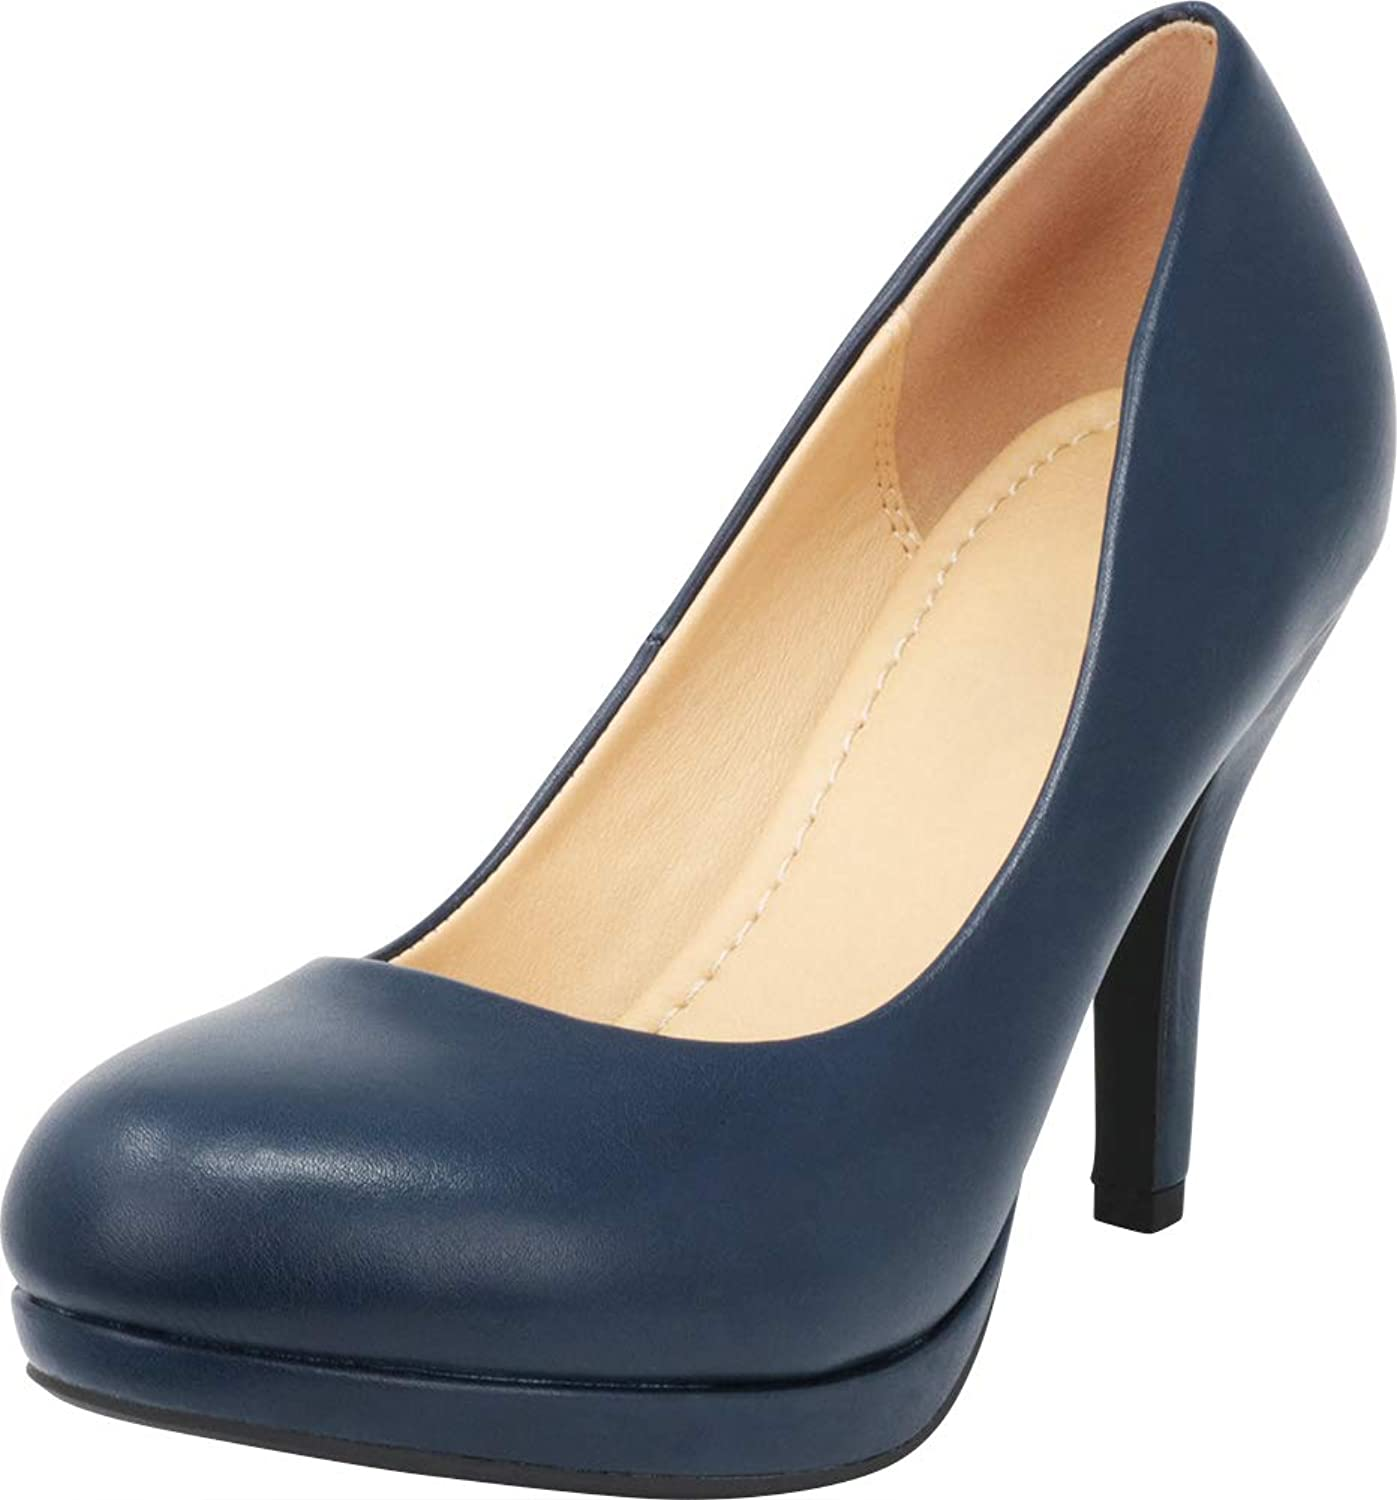 Cambridge Select Women's Closed Round Toe Padded Comfort Slip-On Platform Stiletto High Heel Pump